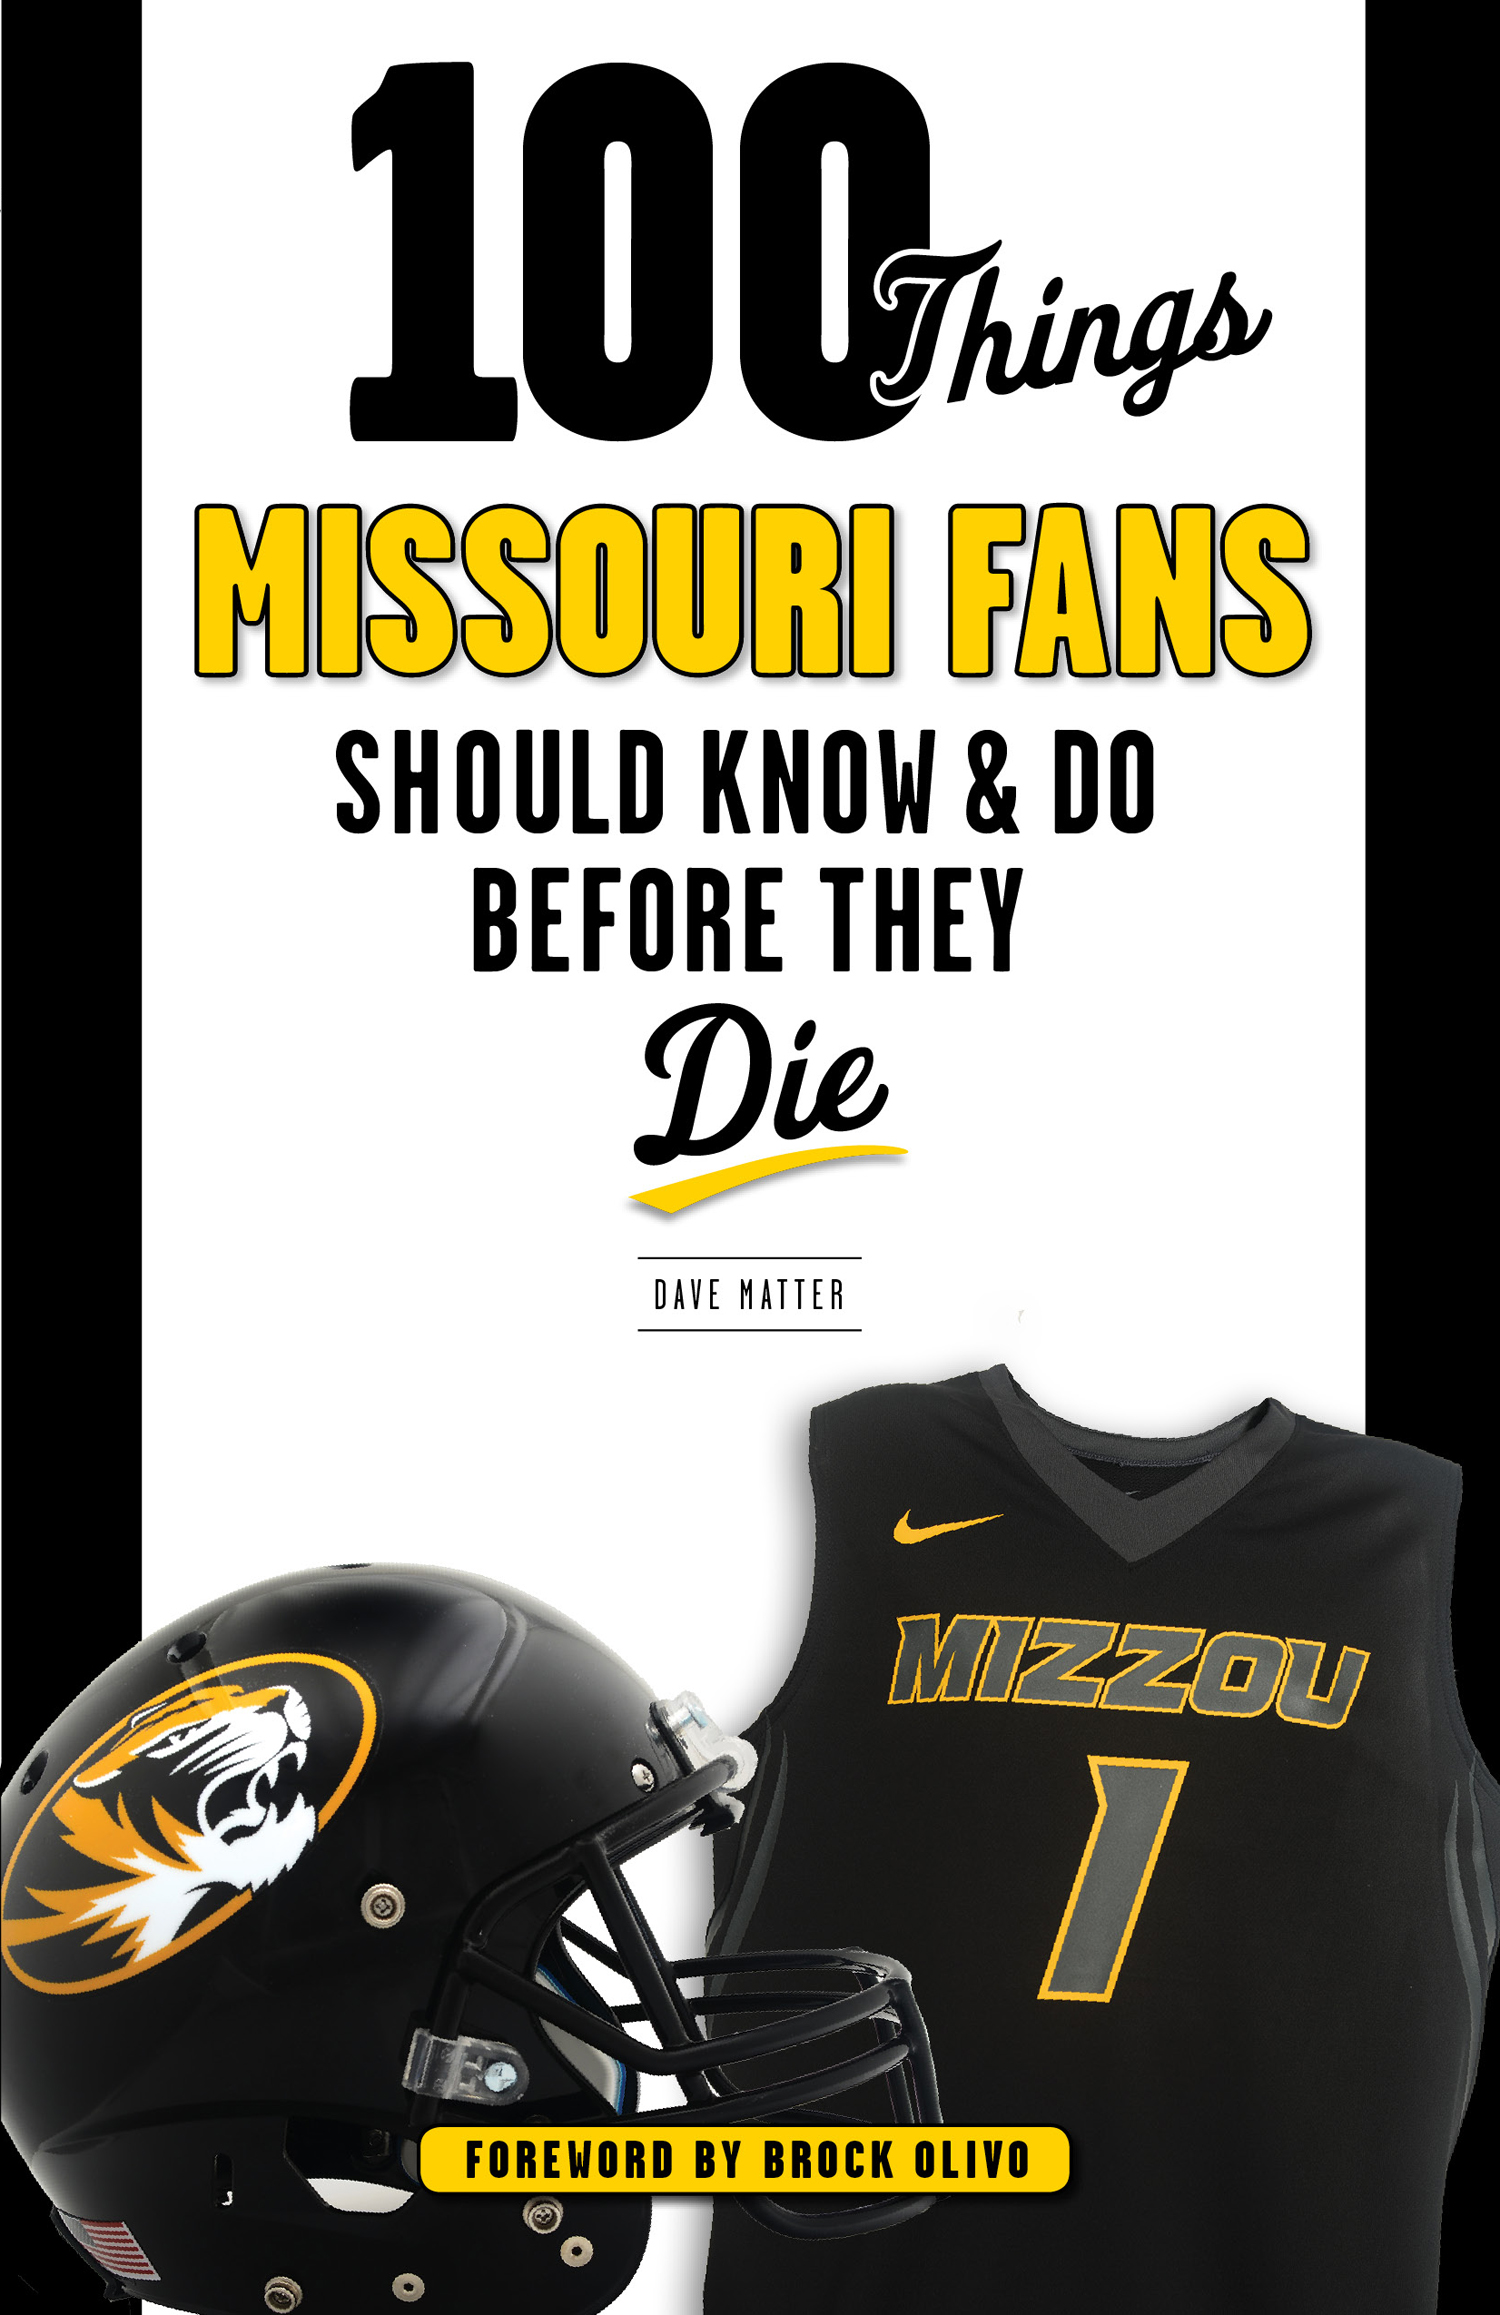 100 Things Mizzou.jpg